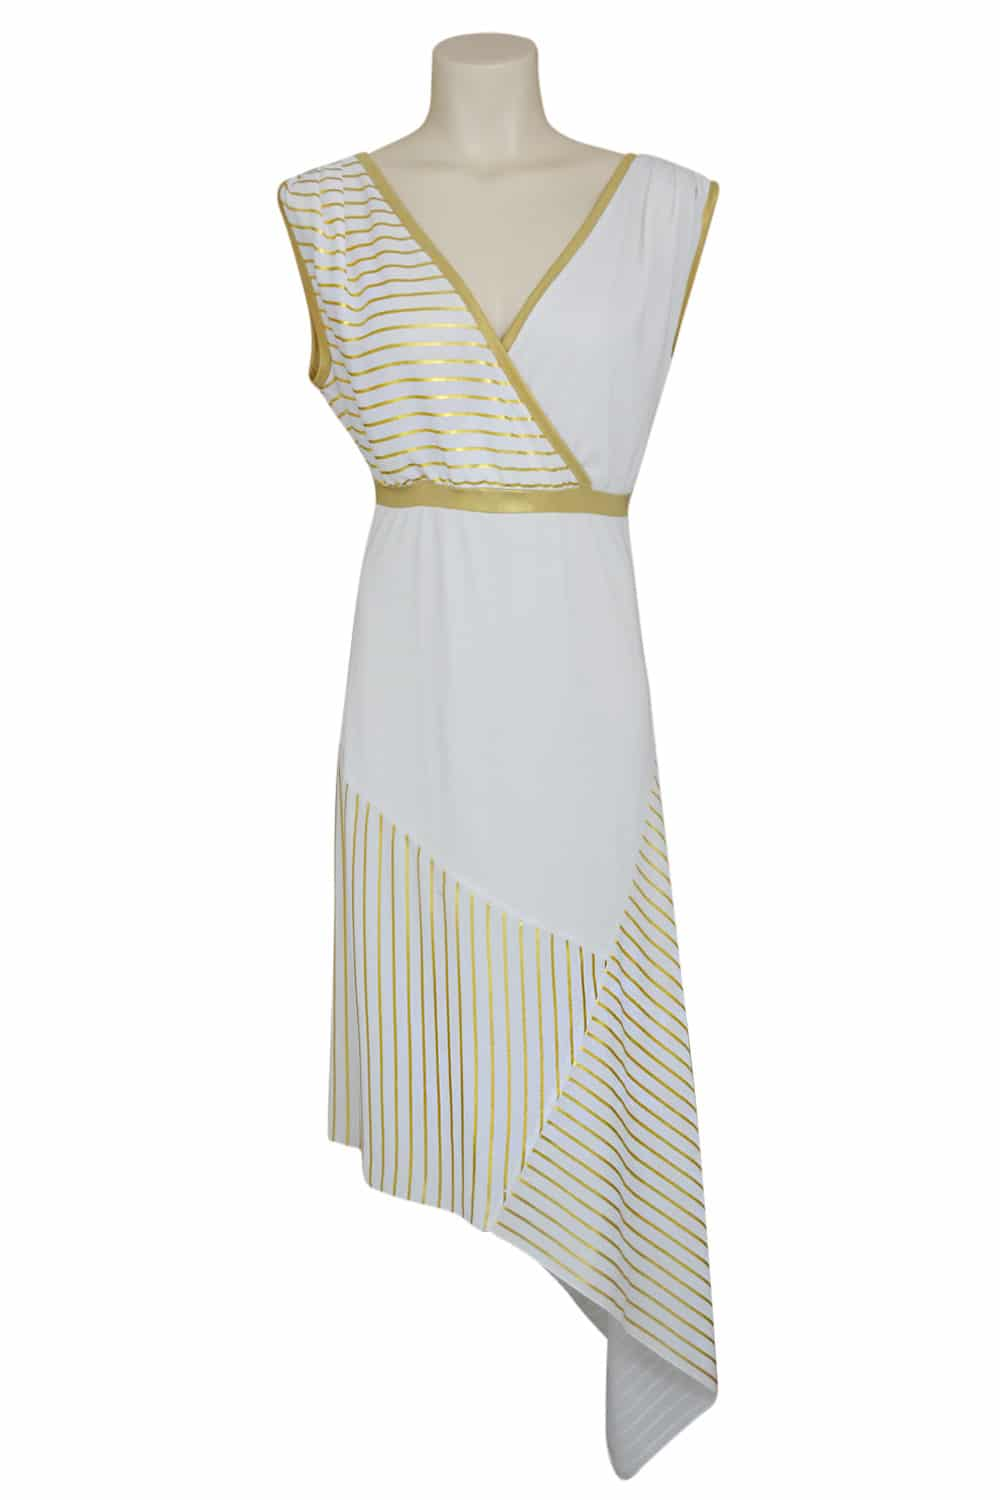 Asymmetrical summer dress in white and gold jersey.